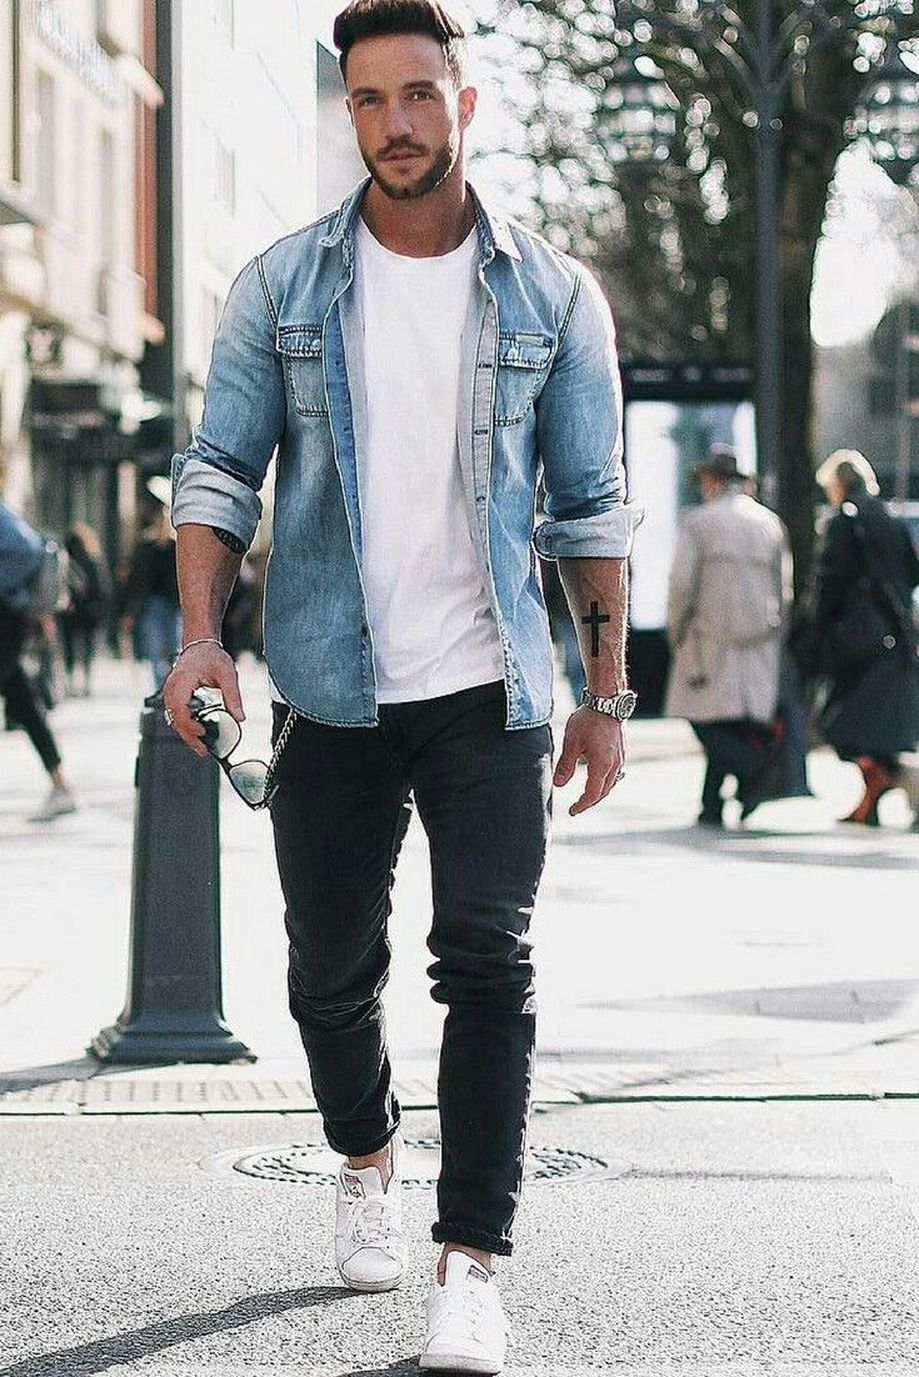 Cool Casual Men S Fashions Summer Outfits Ideas 37 Fashion Best